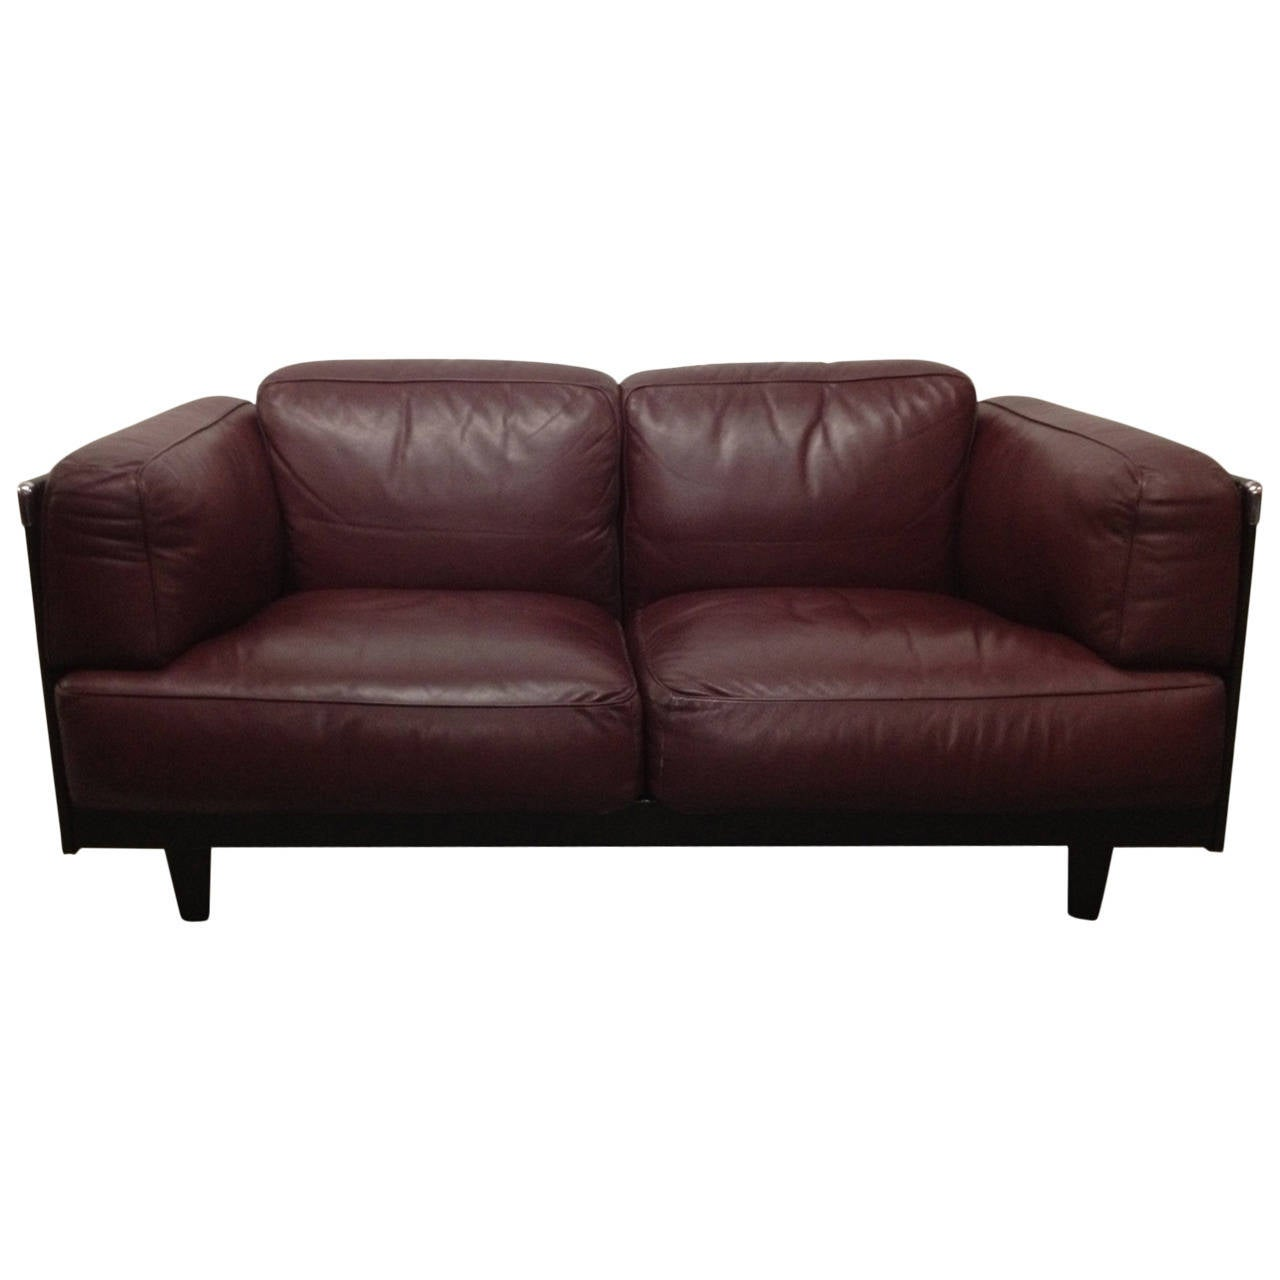 leather sofa by poltrona frau for sale at 1stdibs. Black Bedroom Furniture Sets. Home Design Ideas